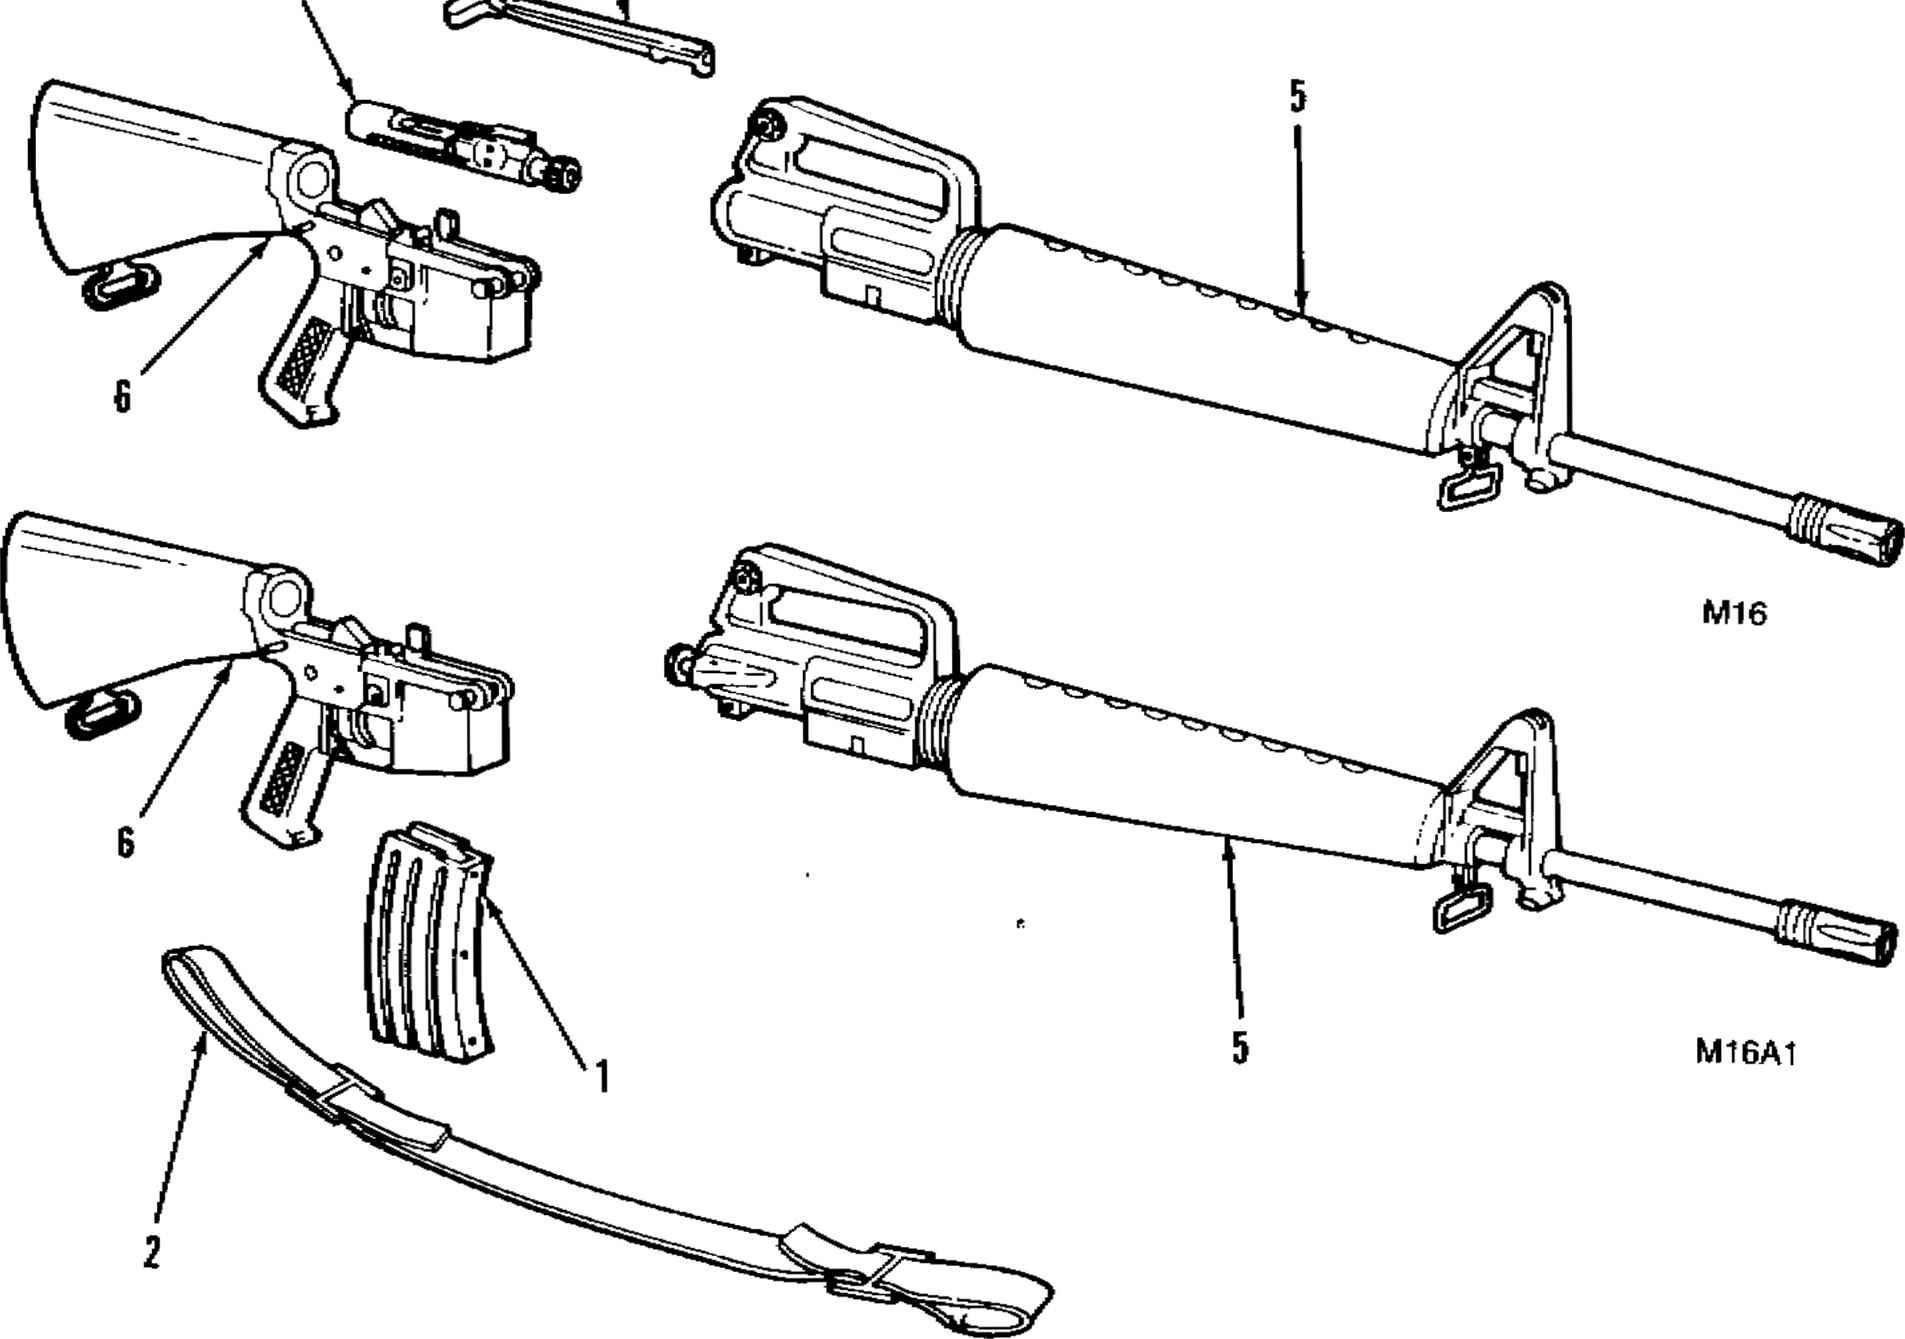 Homemade 22 Pistol Plans